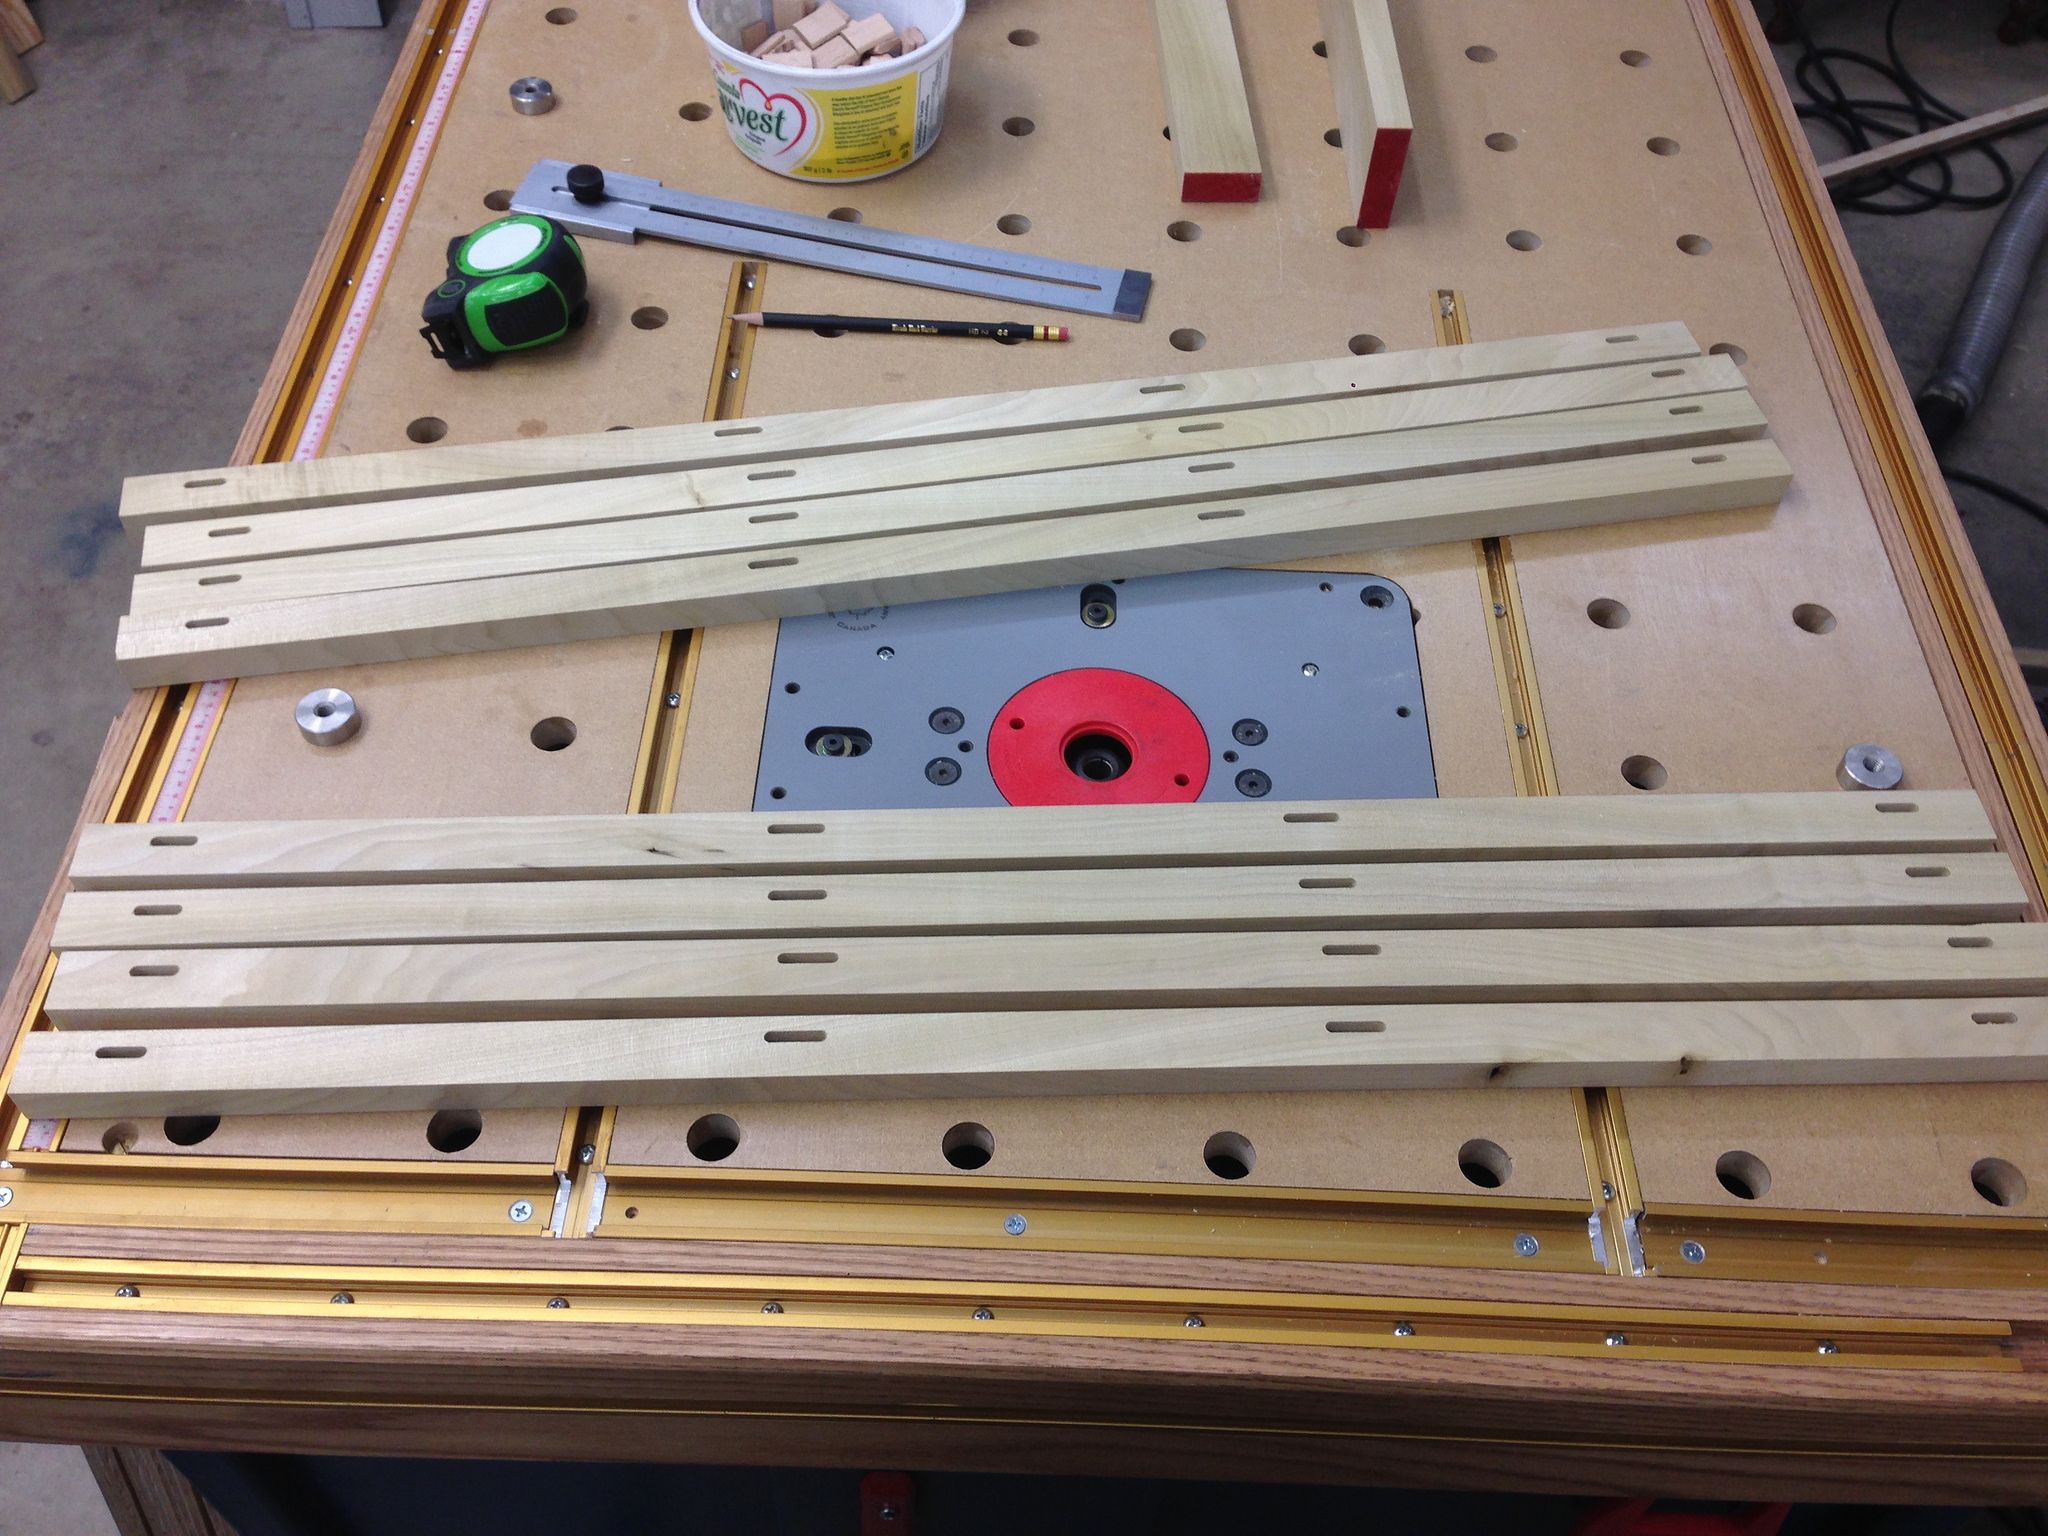 T Track In Home Made Mft Top Http Festoolownersgroup Com Festool Jigs Tool Enhancements T Track In Home Made Mft Top Topics Festool T Track Assembly Table